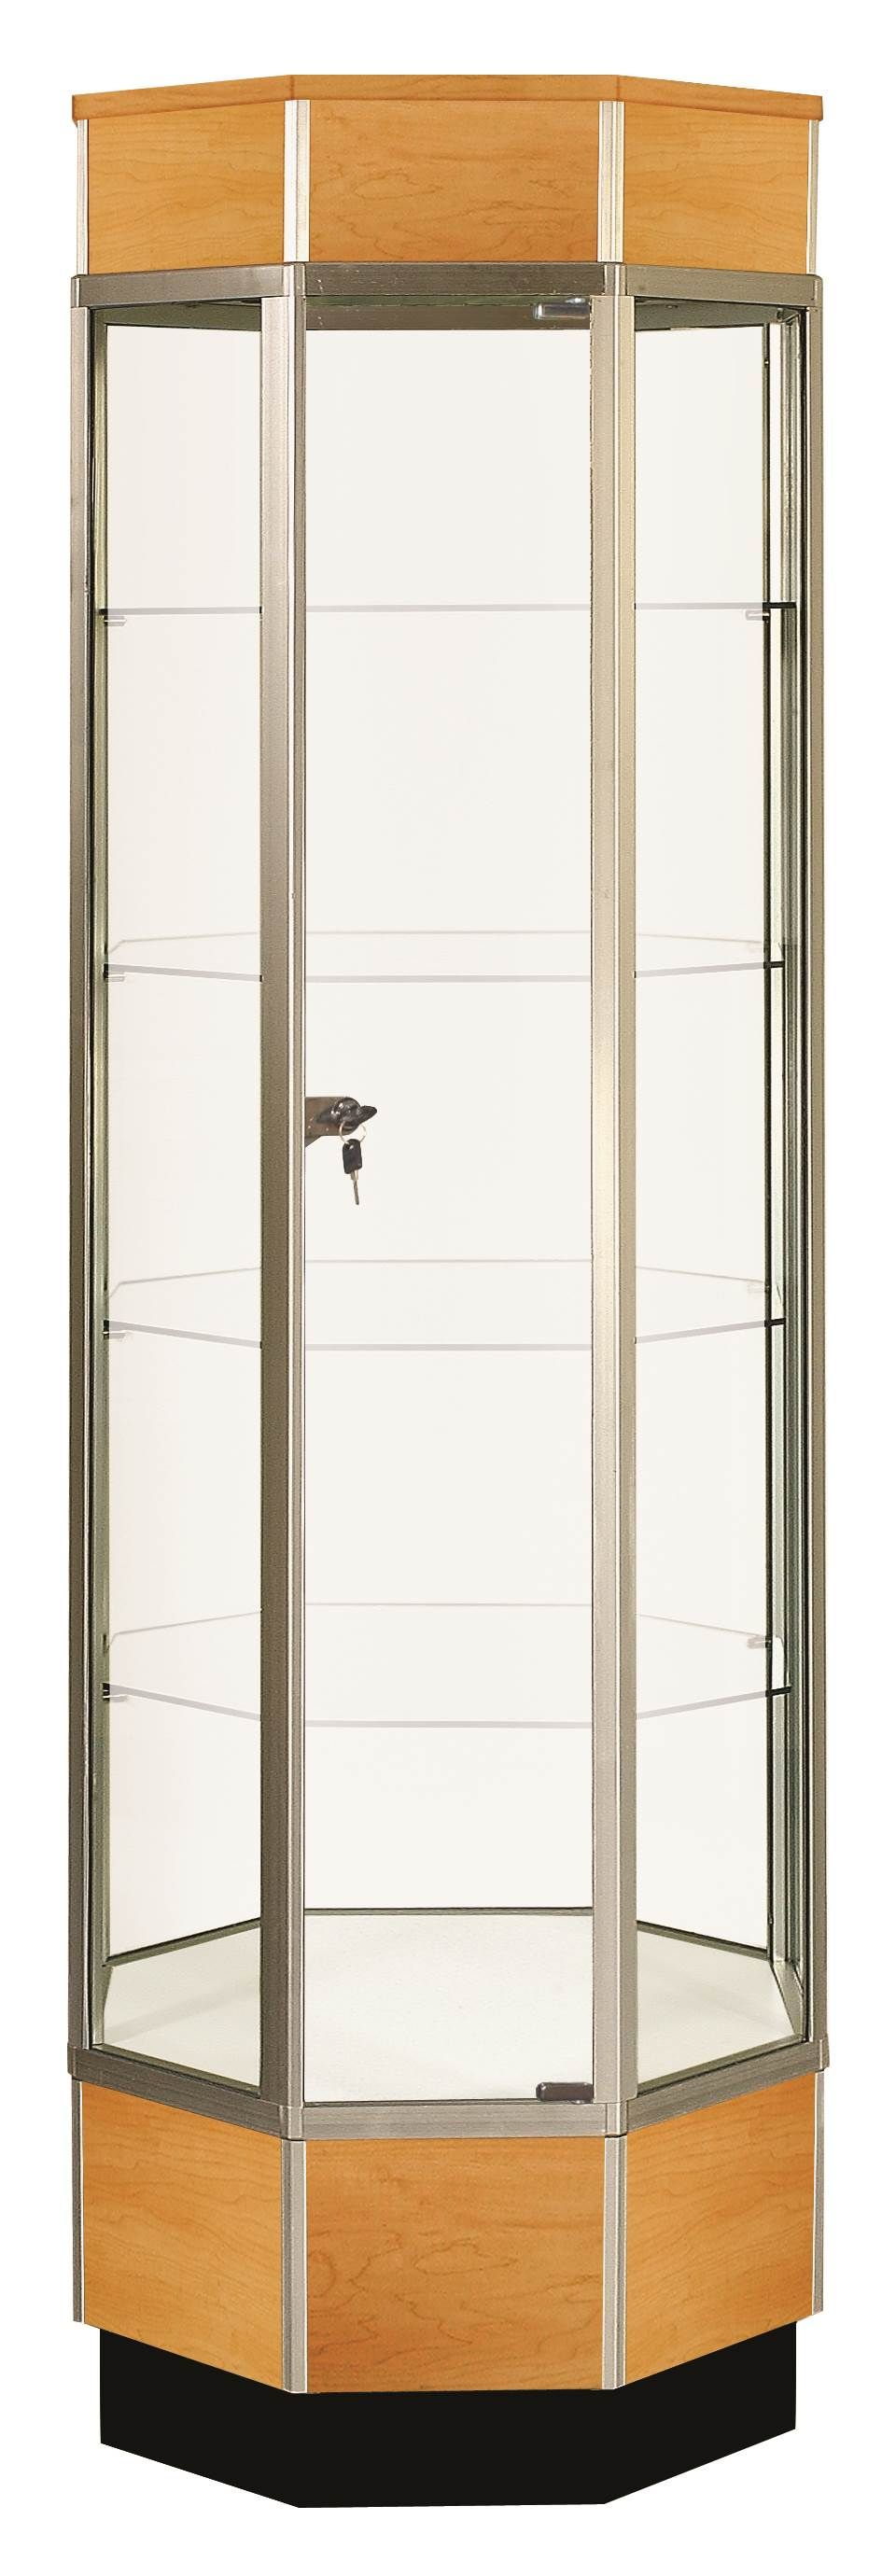 Glass Display Cabinet Showcases: Full Vision Octagonal Tower Glass Display Case / Showcase